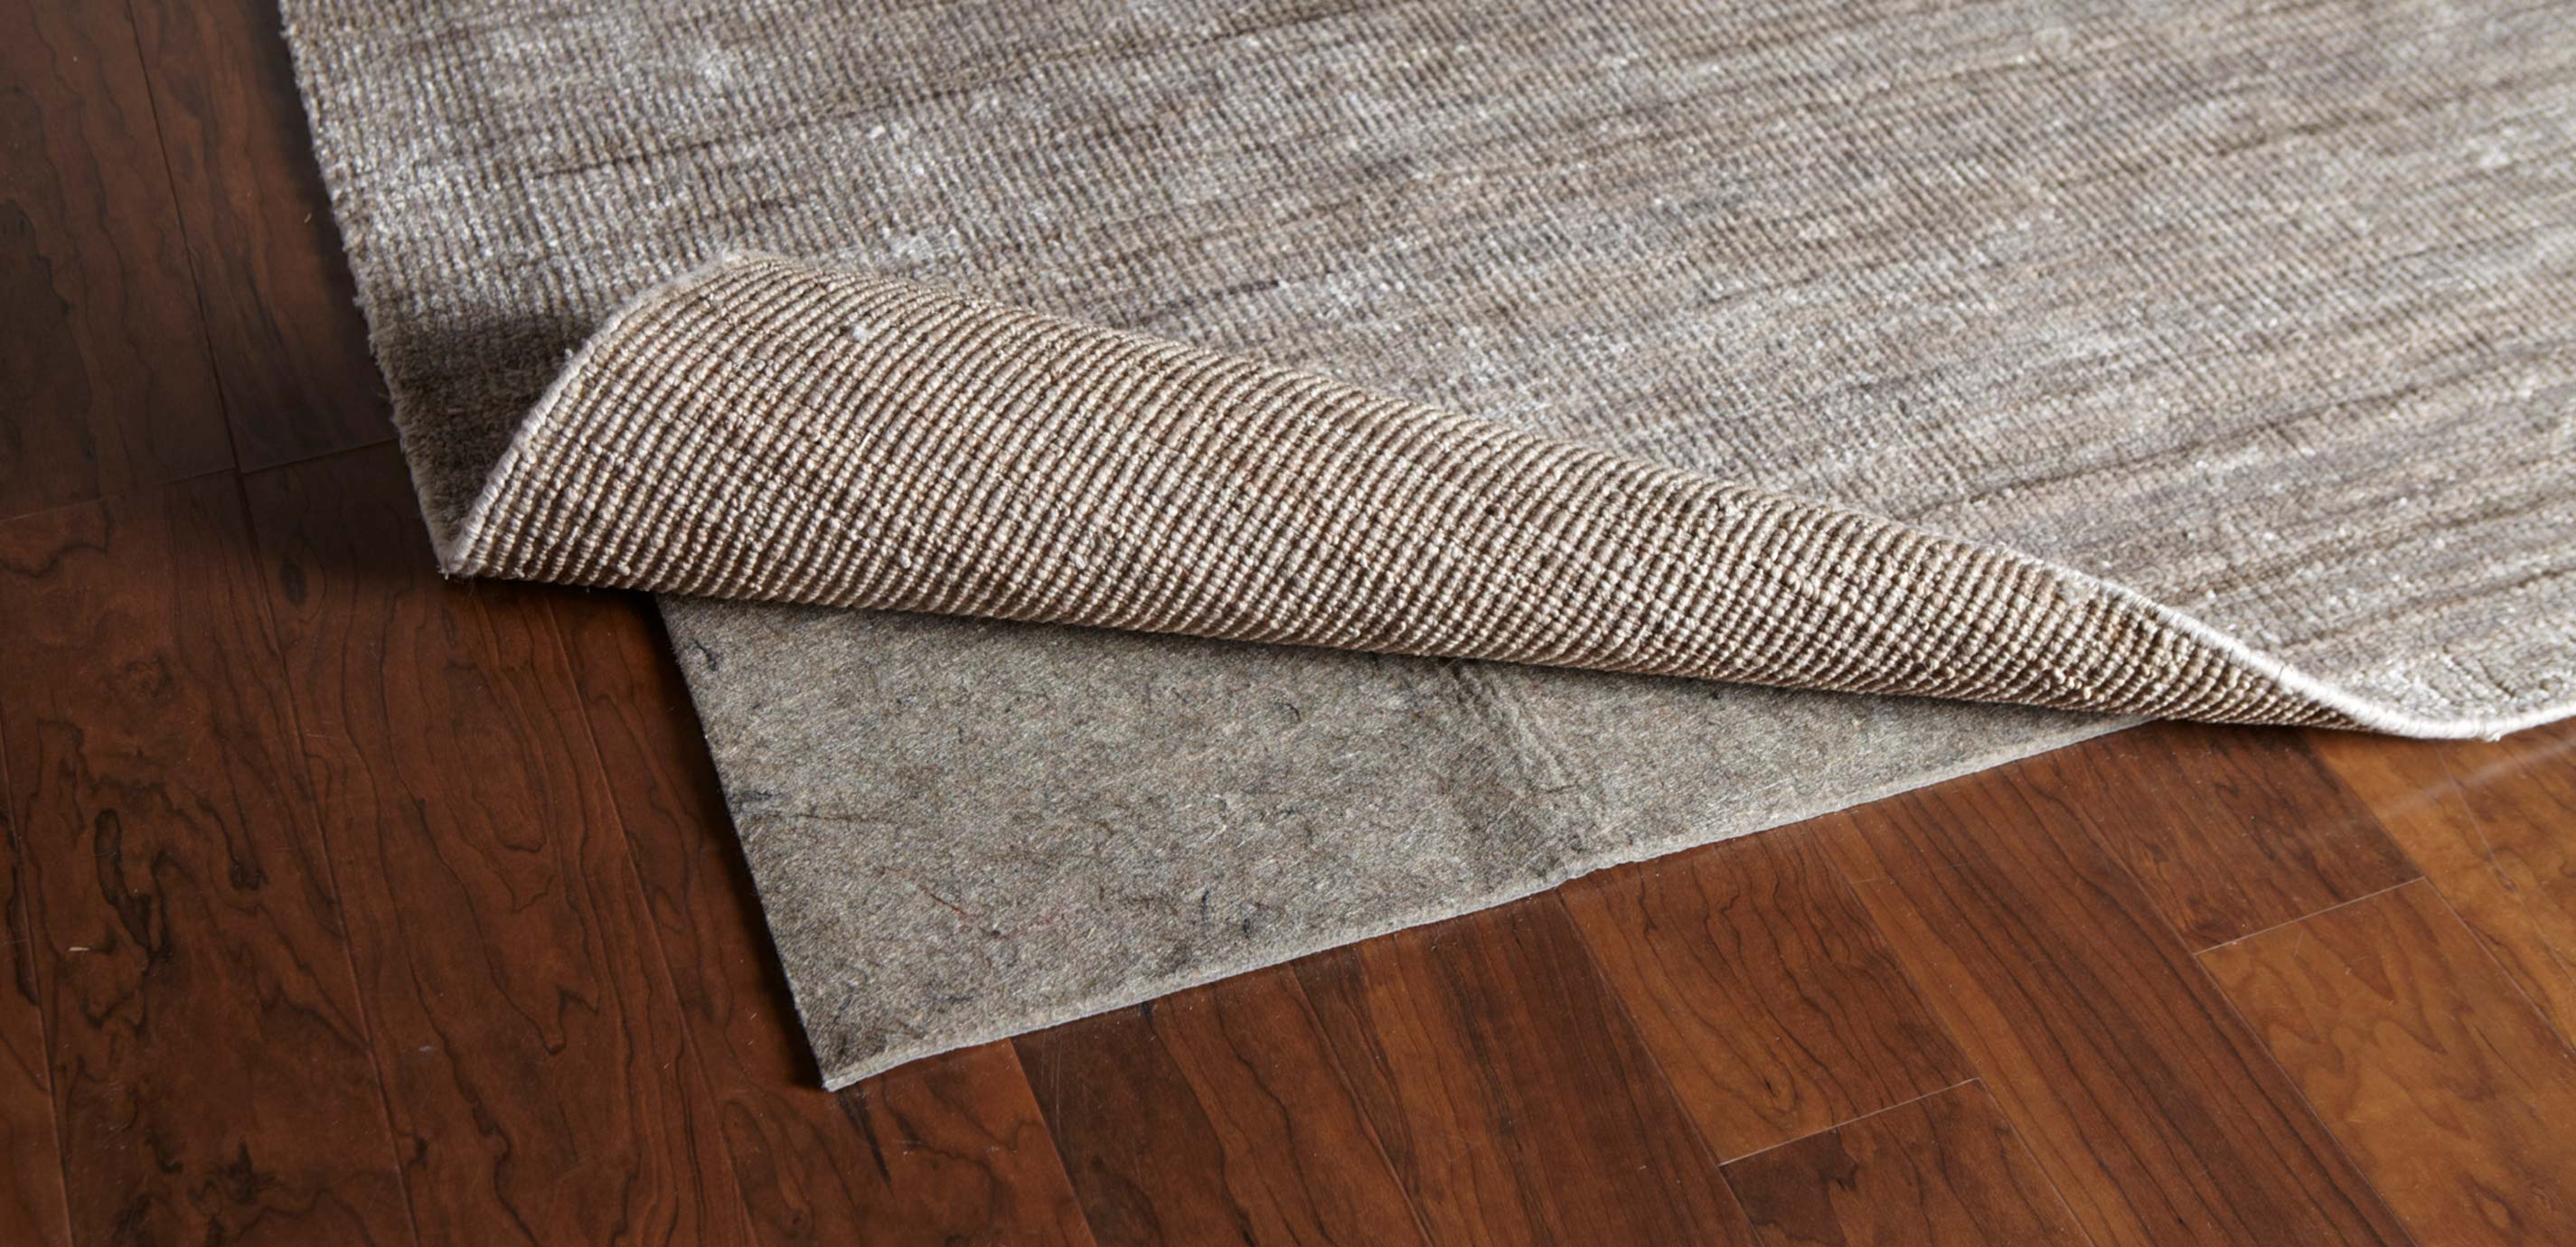 rug l images bedroom hardwood update pads and for team rubber floors souk awesome image home permalink